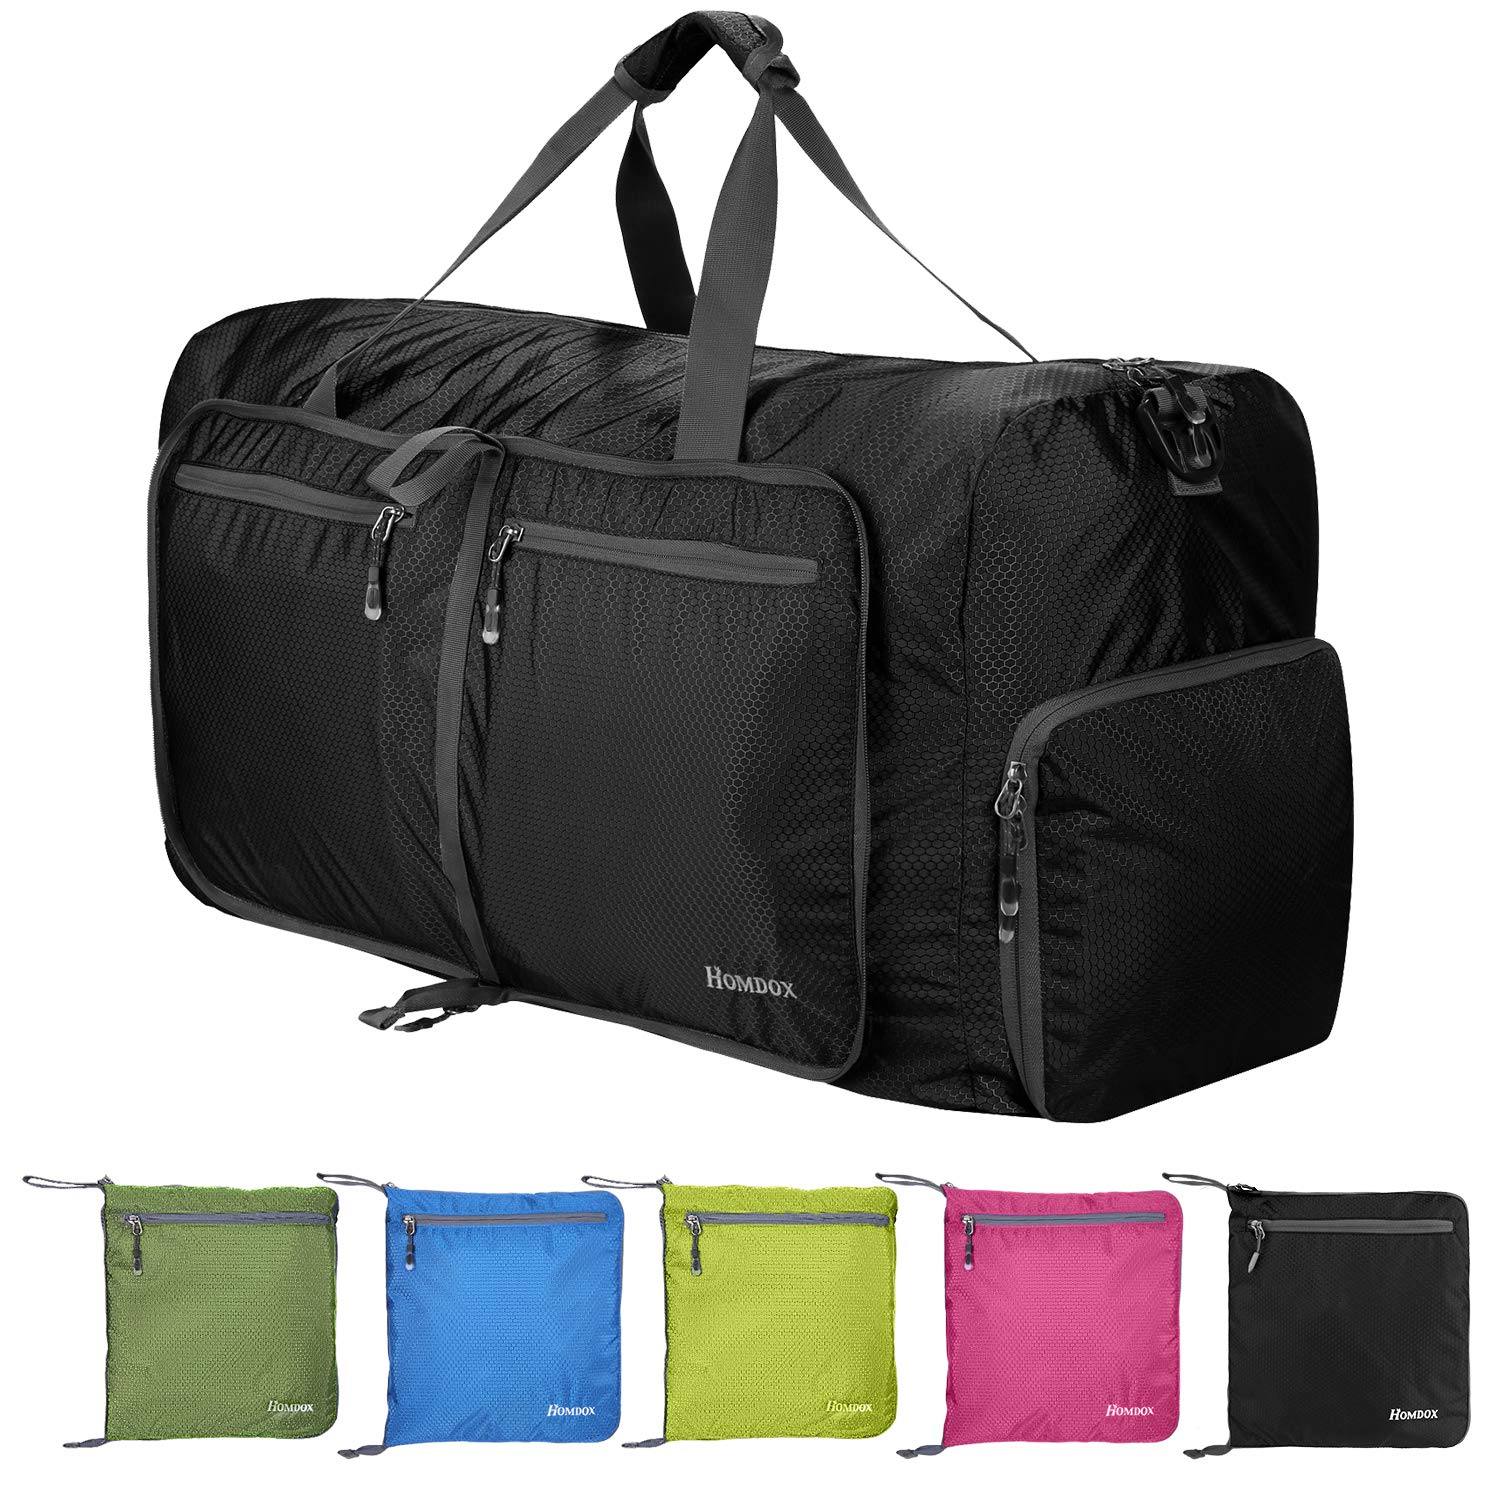 bf3635c17 Homdox 80L Duffle Bag Large Foldable Lightweight Waterproof Duffel Bag for  Camping,Rolling Packable Large Gym Duffle Bags for Men Women,Luggage Bags  for ...